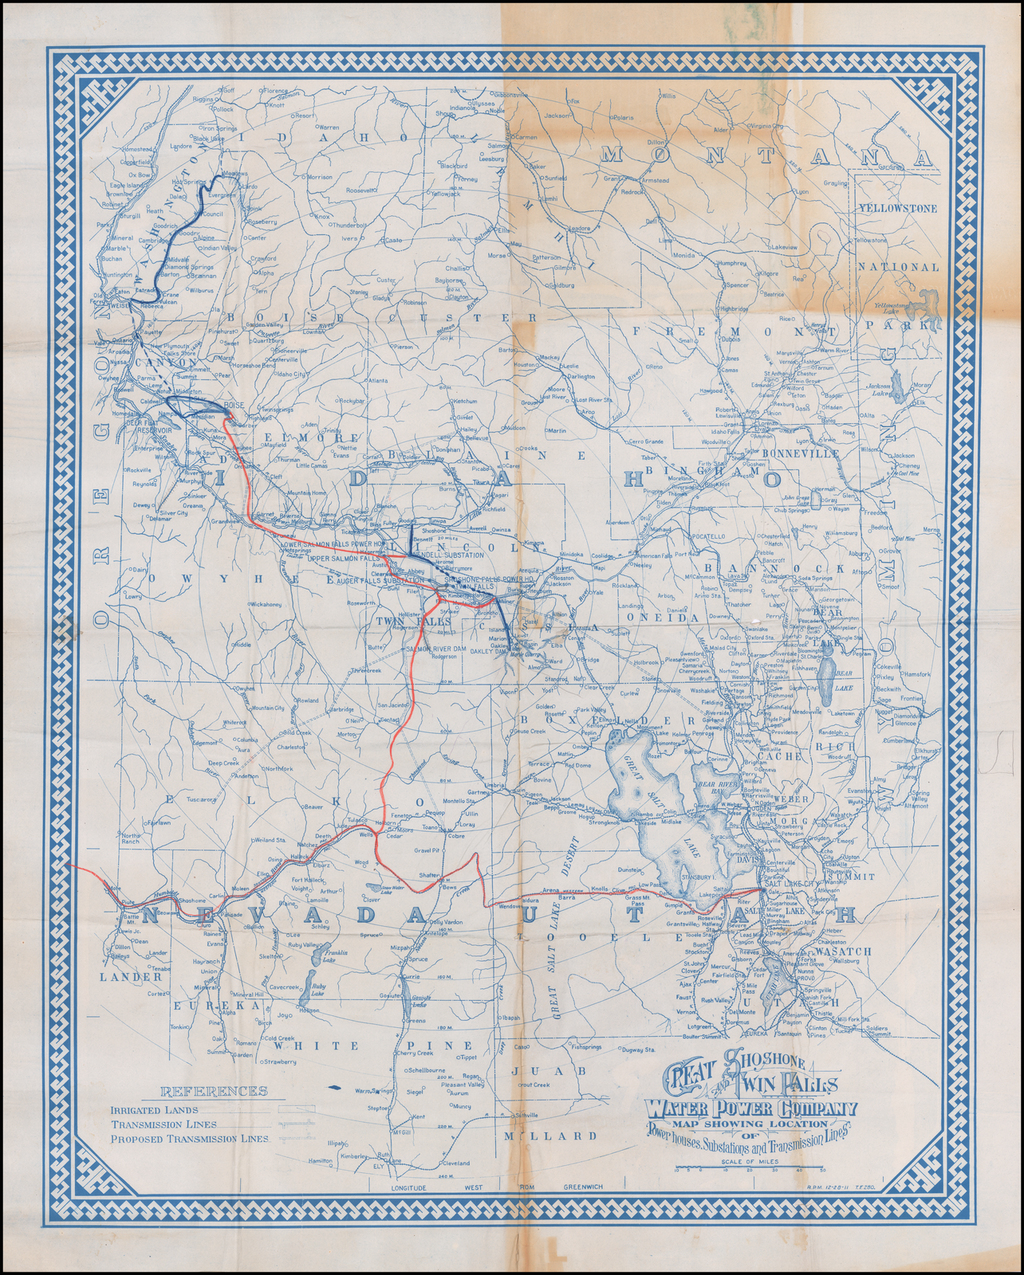 Great Shoshone and Twin Falls Water Power Company Map Showing Location of Power houses, Substations and Transmission Lines By Great Shoshone and Twin Falls Water Power Company